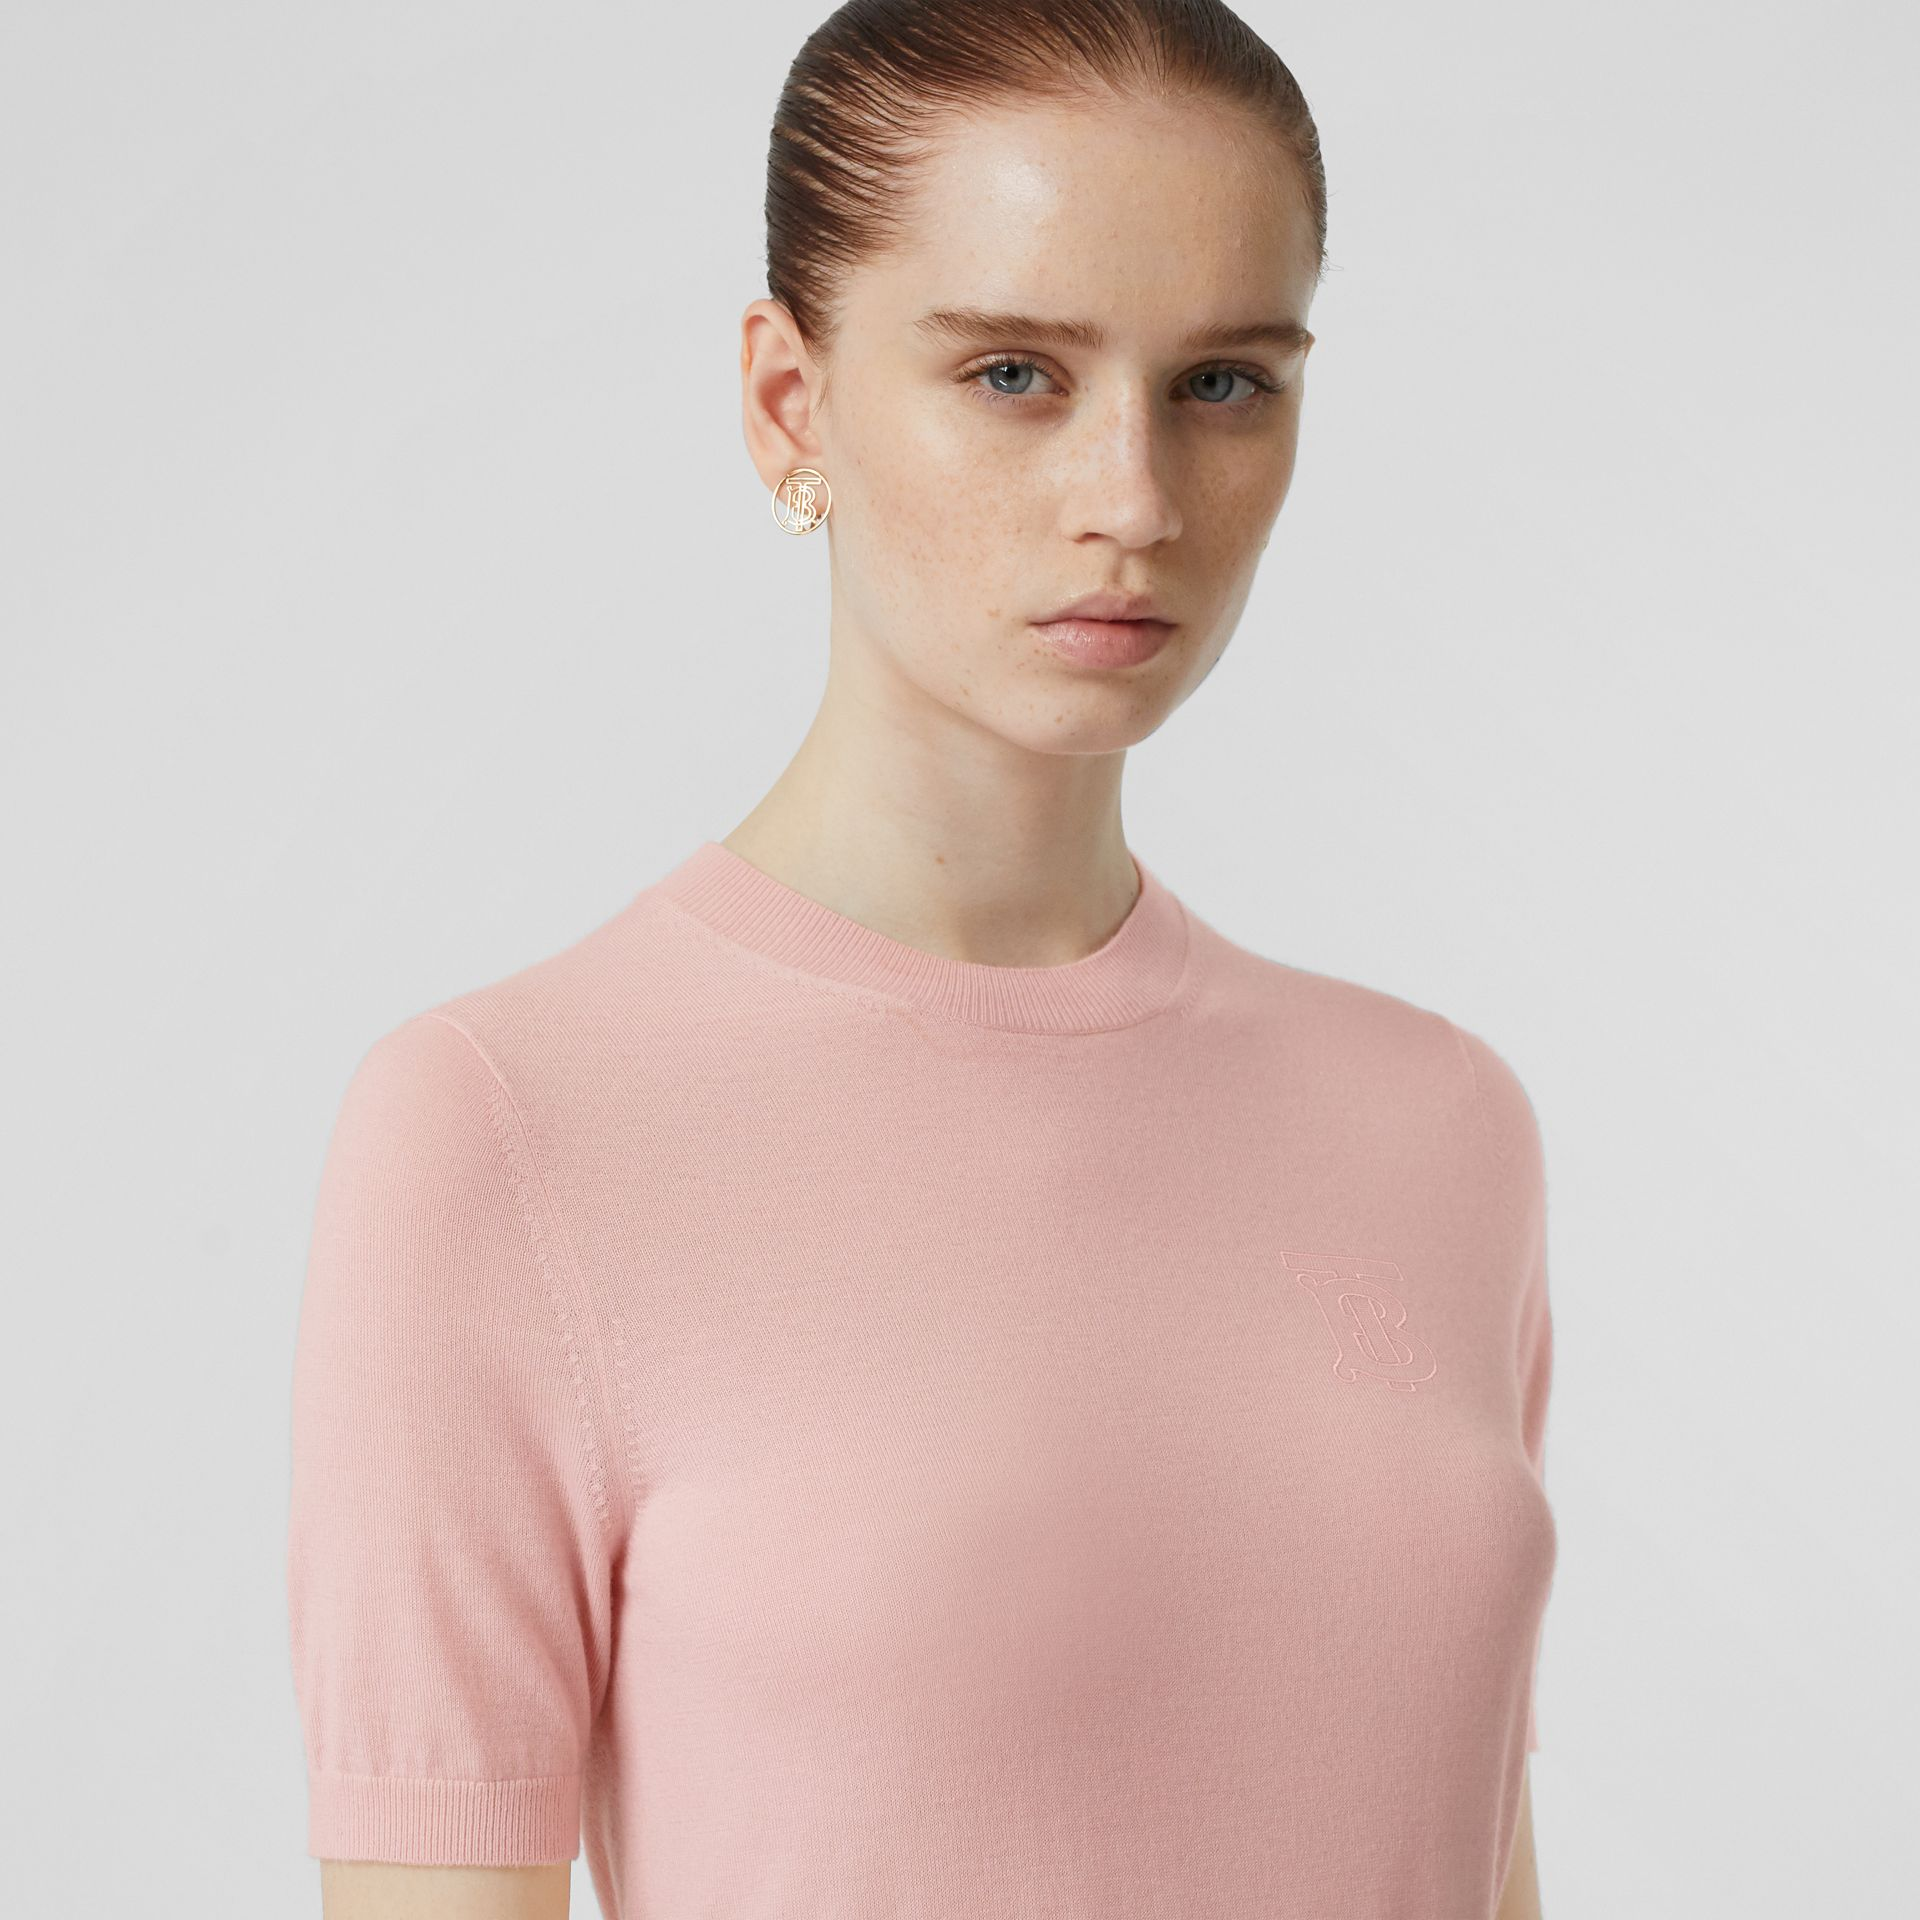 Monogram Motif Cashmere Top in Pink - Women | Burberry Canada - gallery image 1